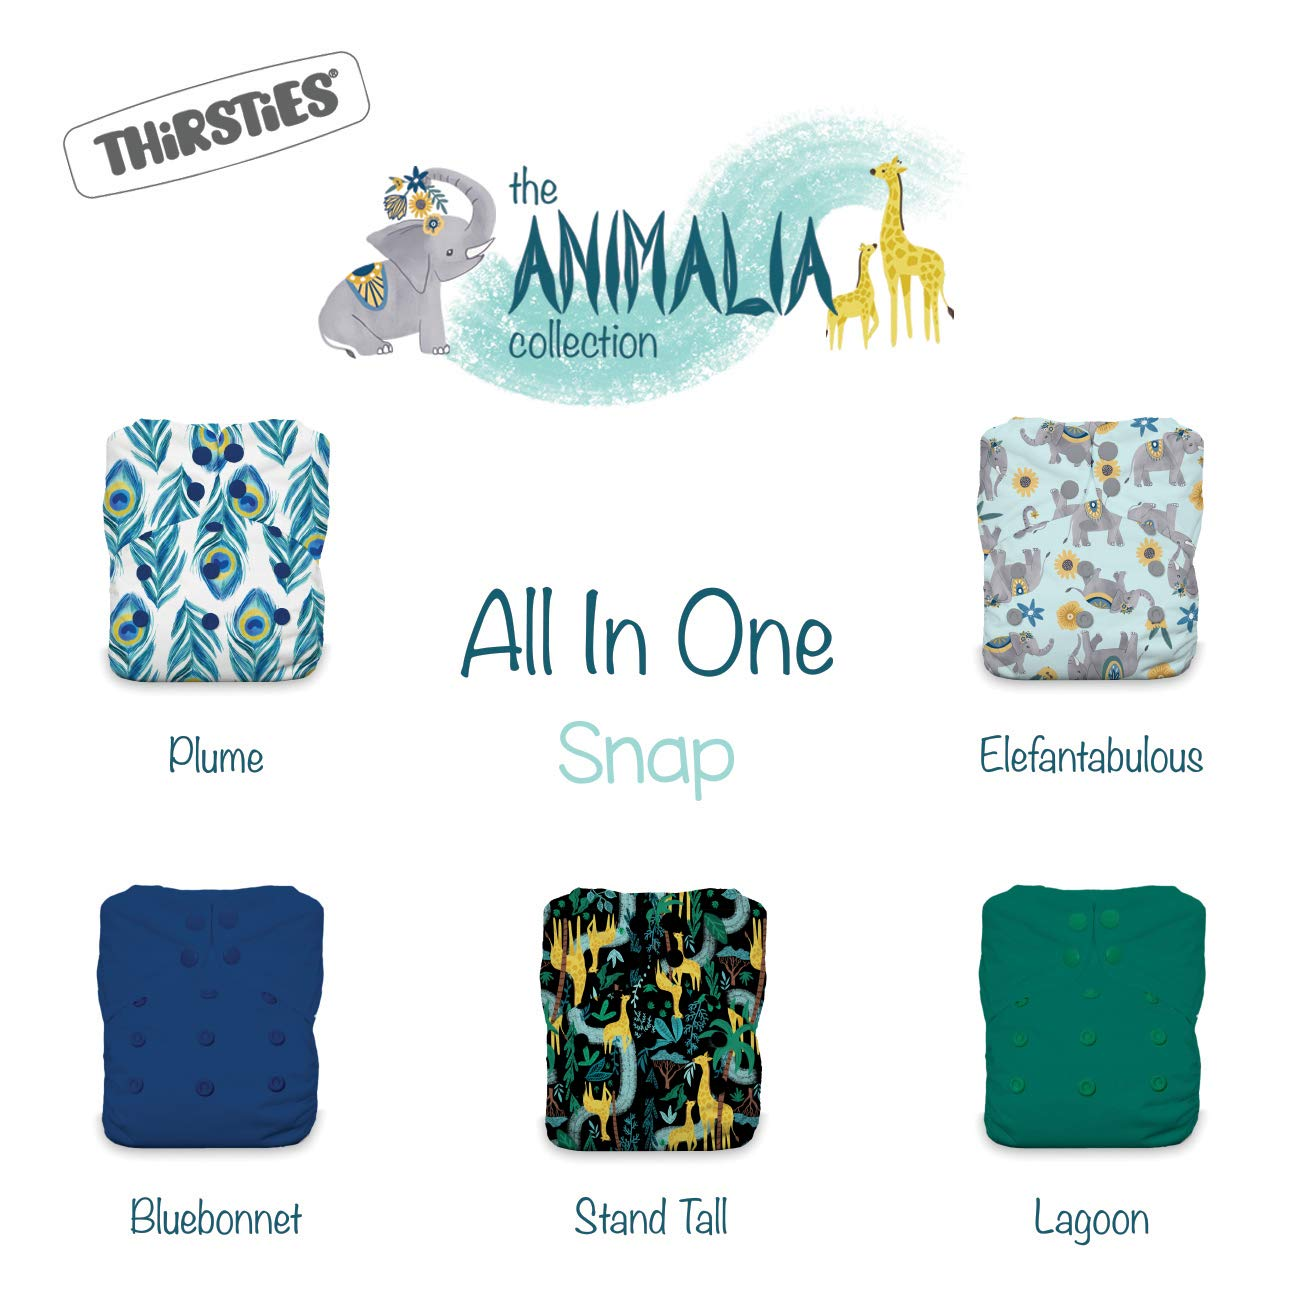 Thirsties Animalia Cloth Diaper Collection Package, Snap One Size All in One Cloth Diaper, Animalia